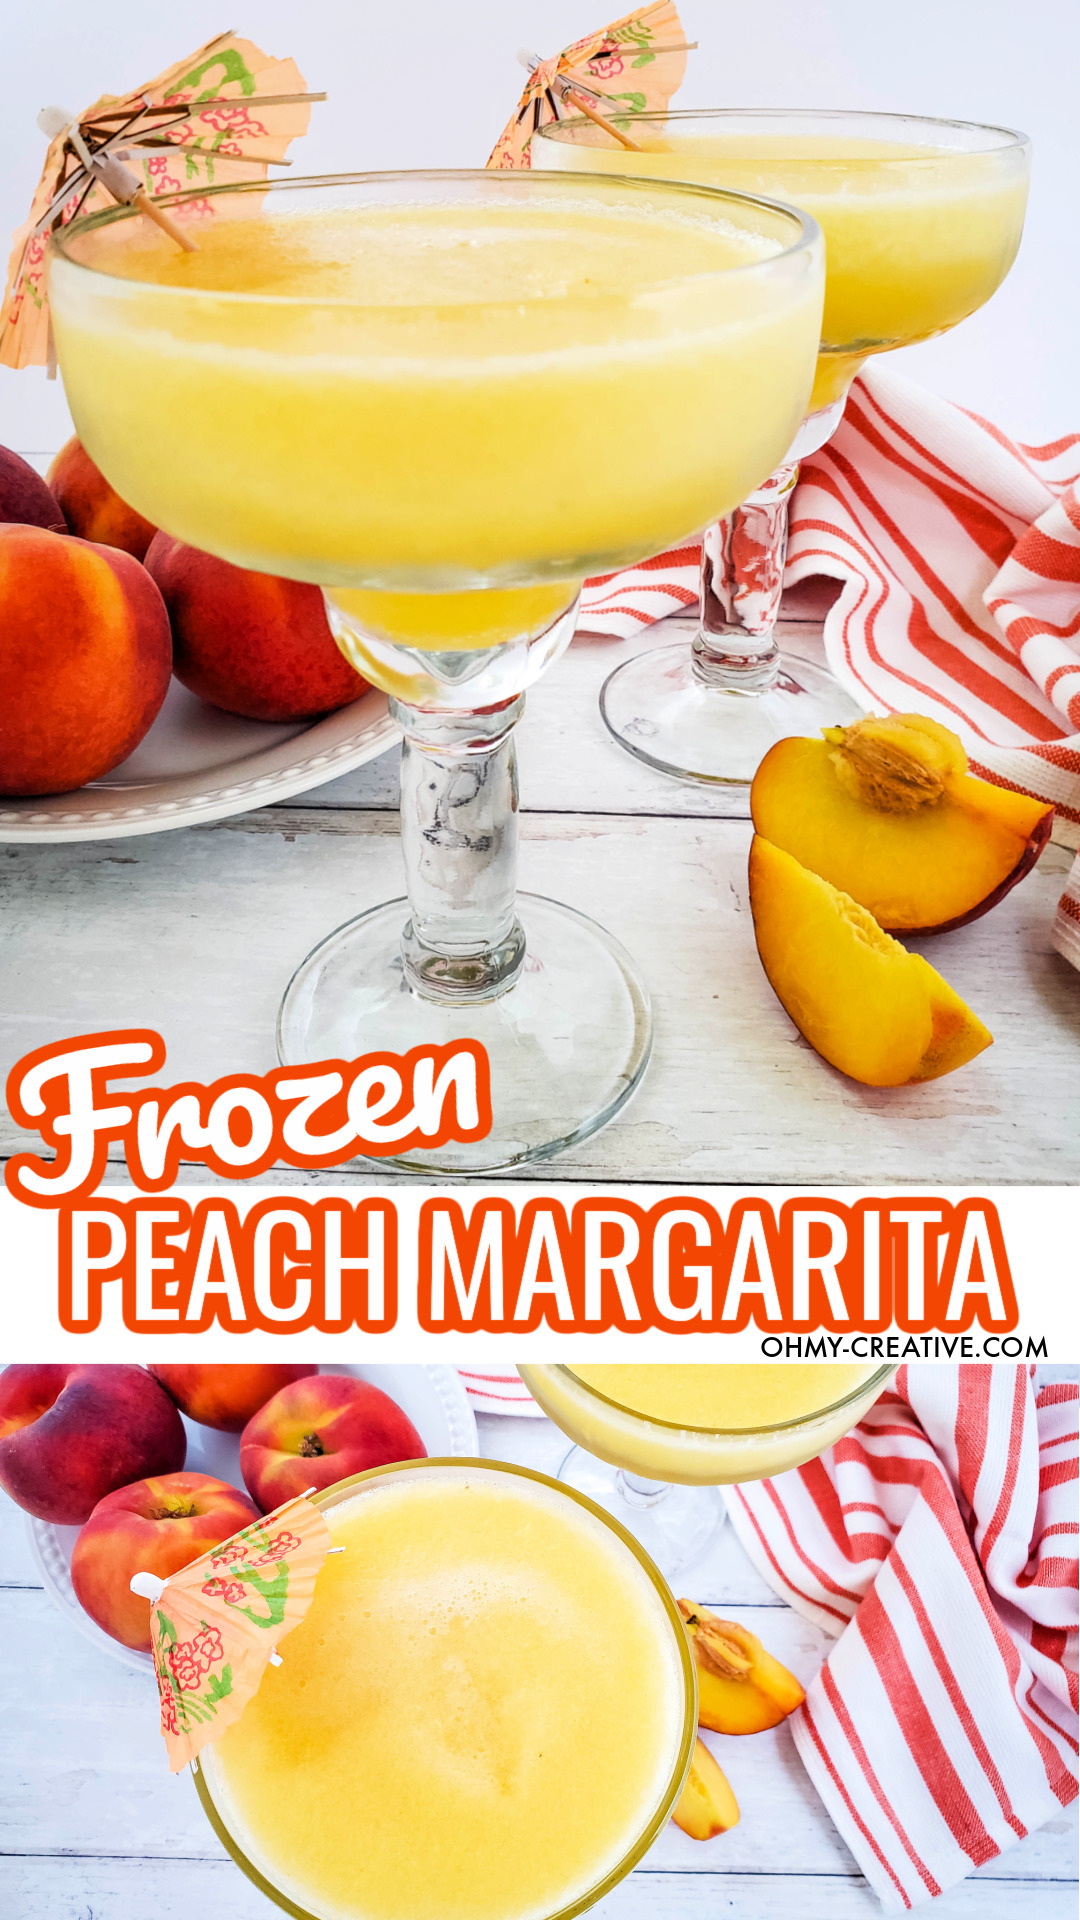 These two frozen peach margaritas are garnished with fun drink umbrellas. They are sitting on a white wood background with a stripped hand towel and sliced peaches.